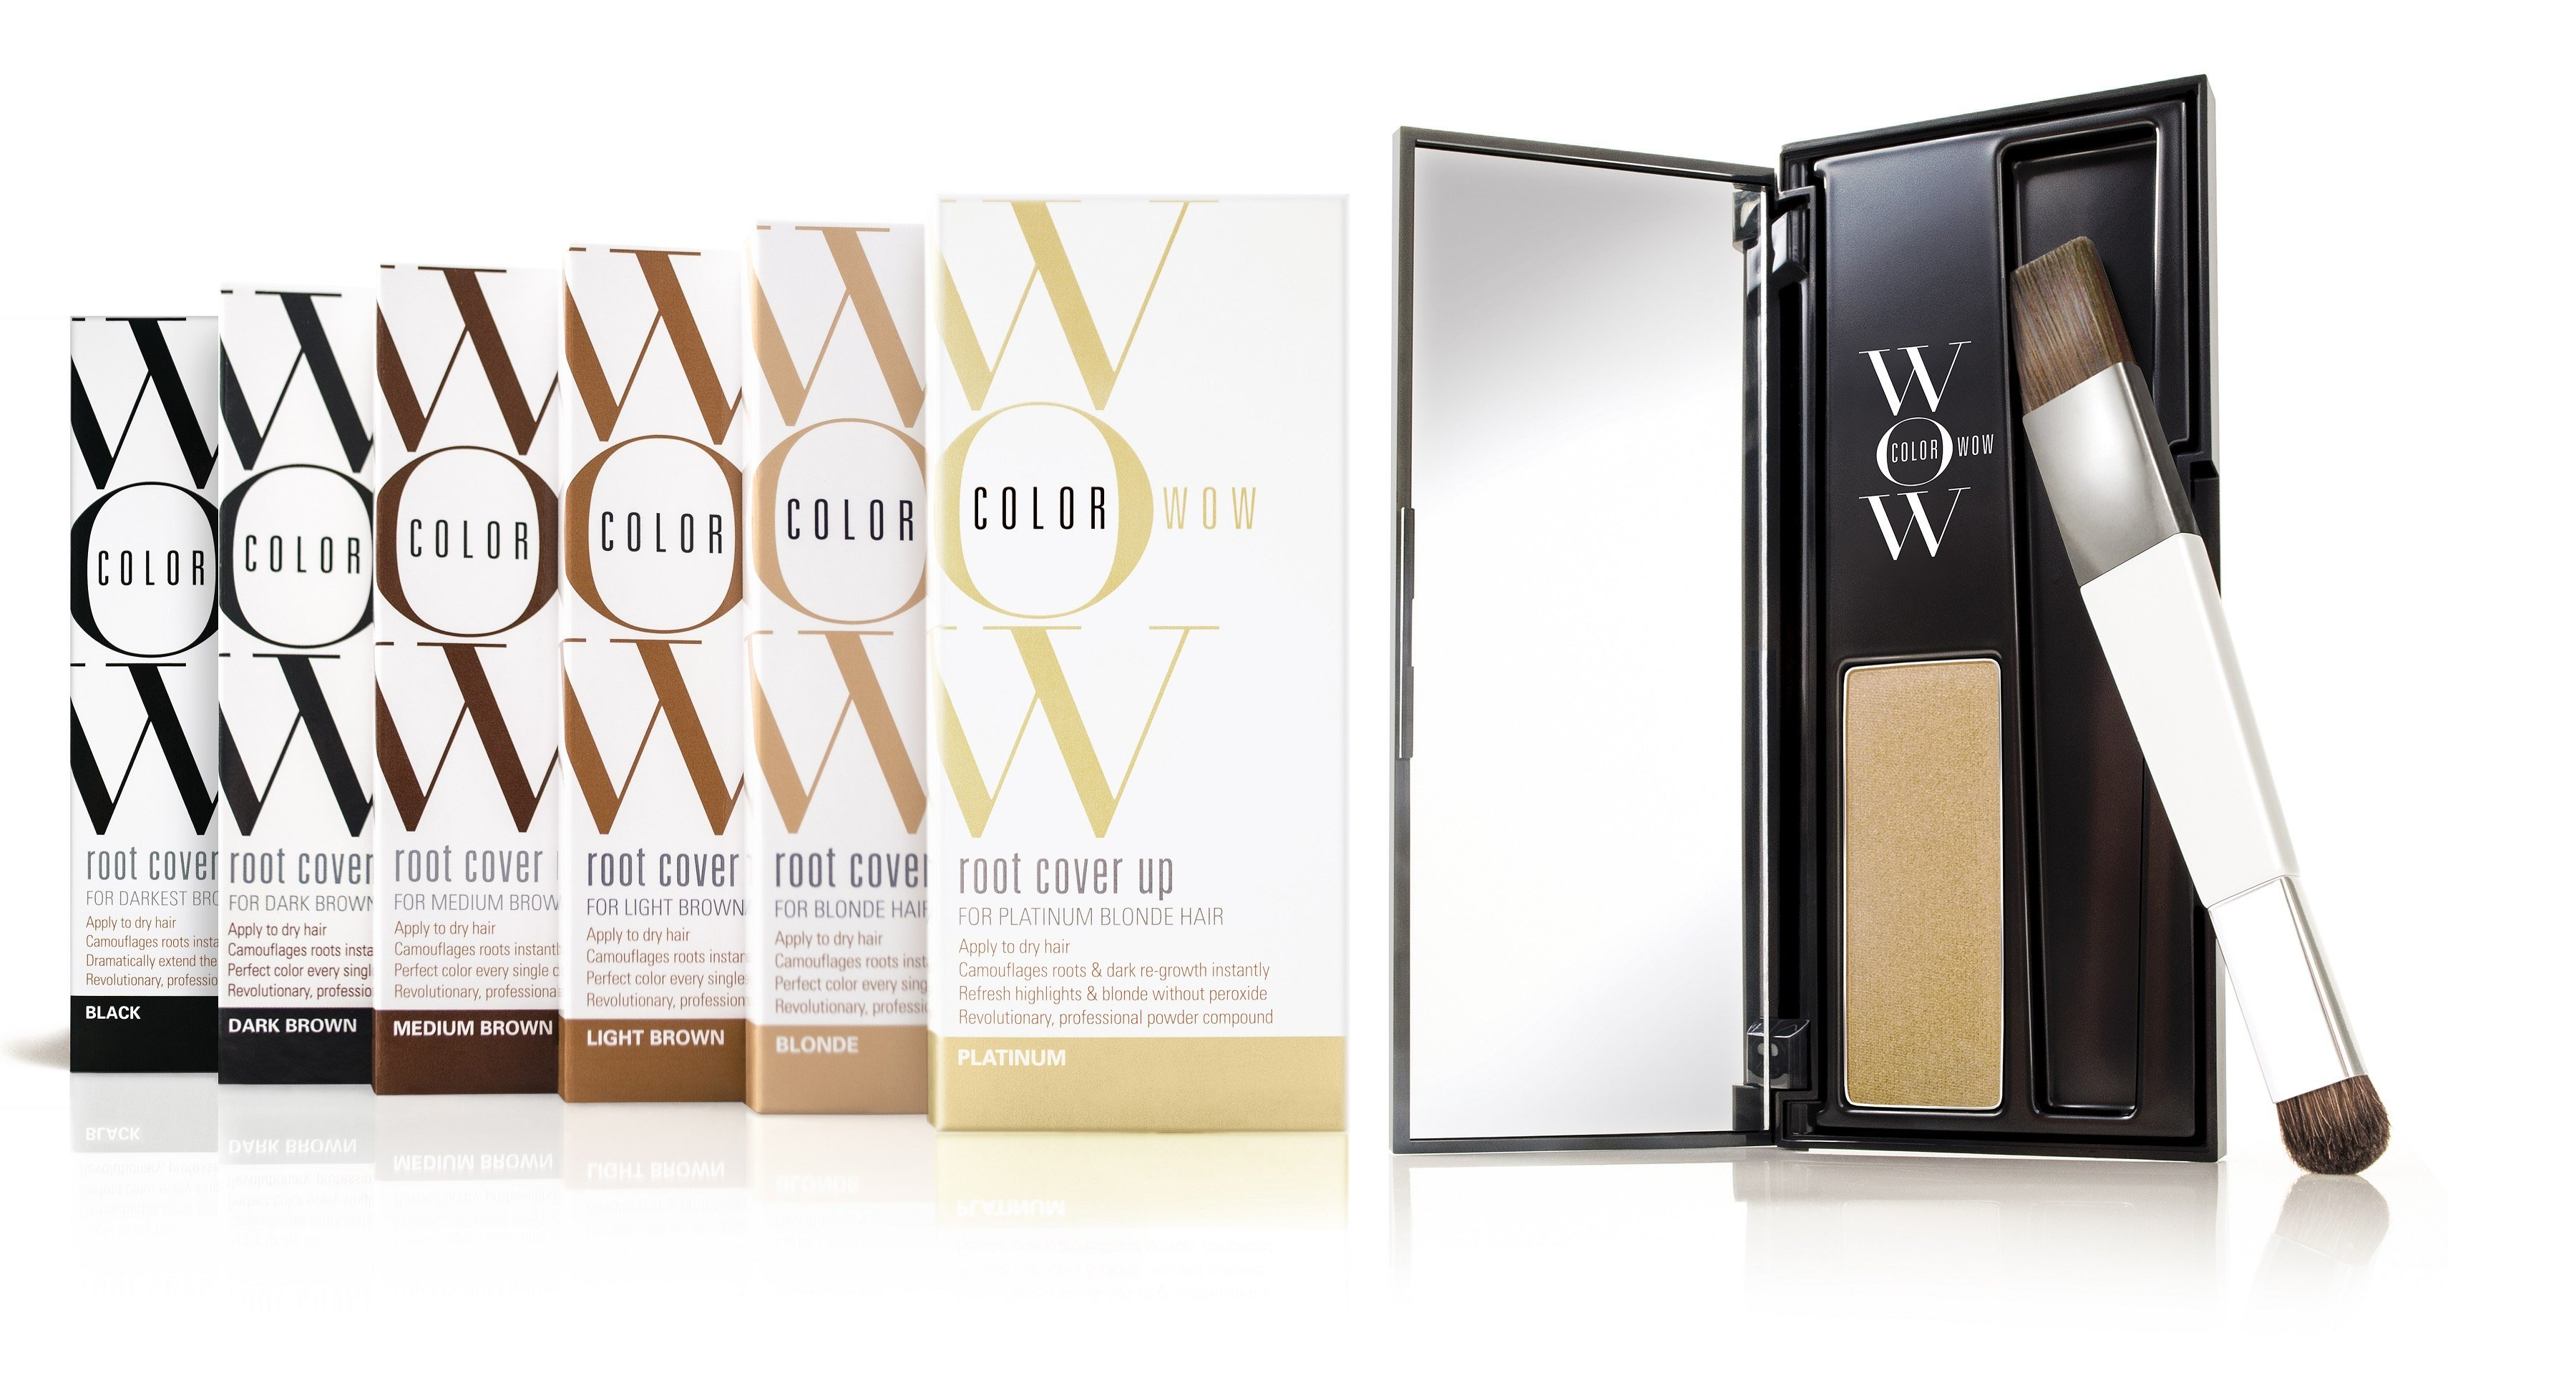 Color WOW Root Cover Up at Salon-M!